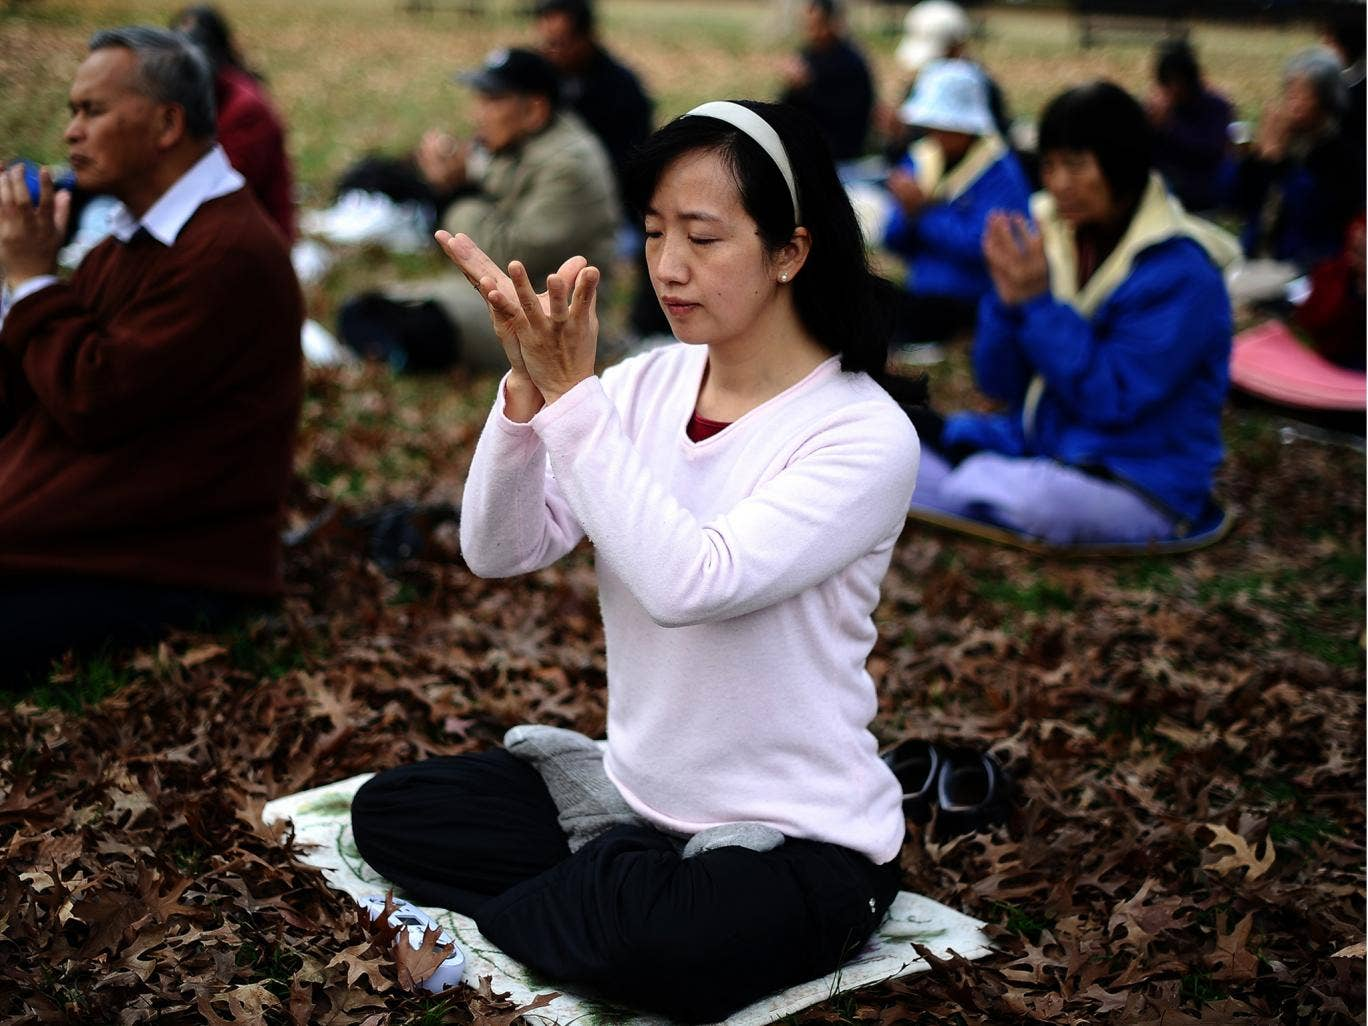 Members of Falun Gong spiritual movement meditate at the Lafayette Park. A new study has suggested that spiritual activity such as meditation may hep prevent depression by thickening the brain cortex